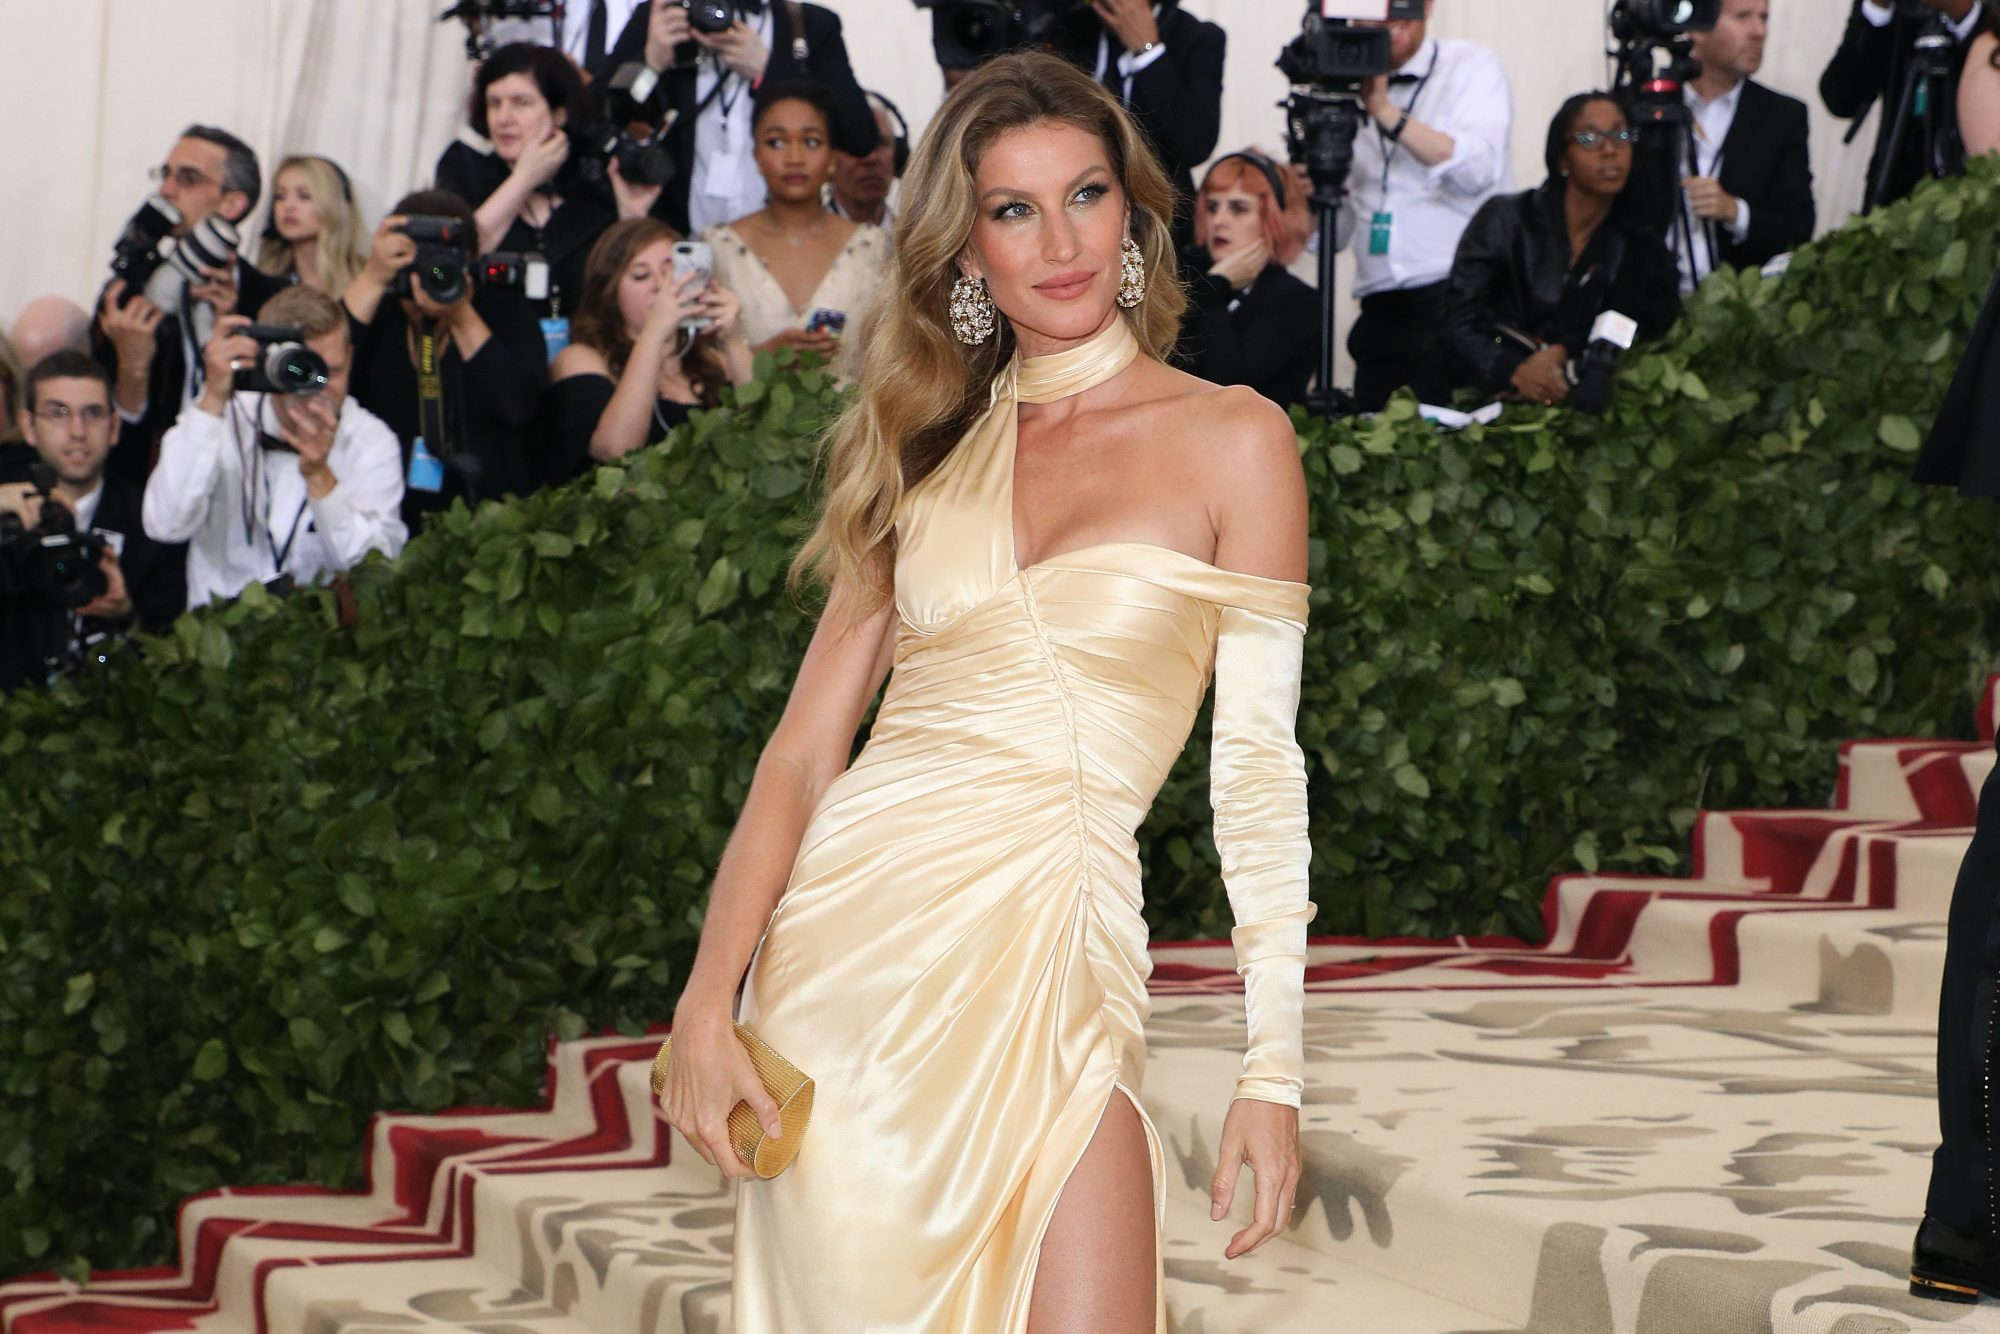 Gisele Bündchen Says She Battled Panic Attacks So Extreme She Considered Suicide: 'I Felt Powerless'